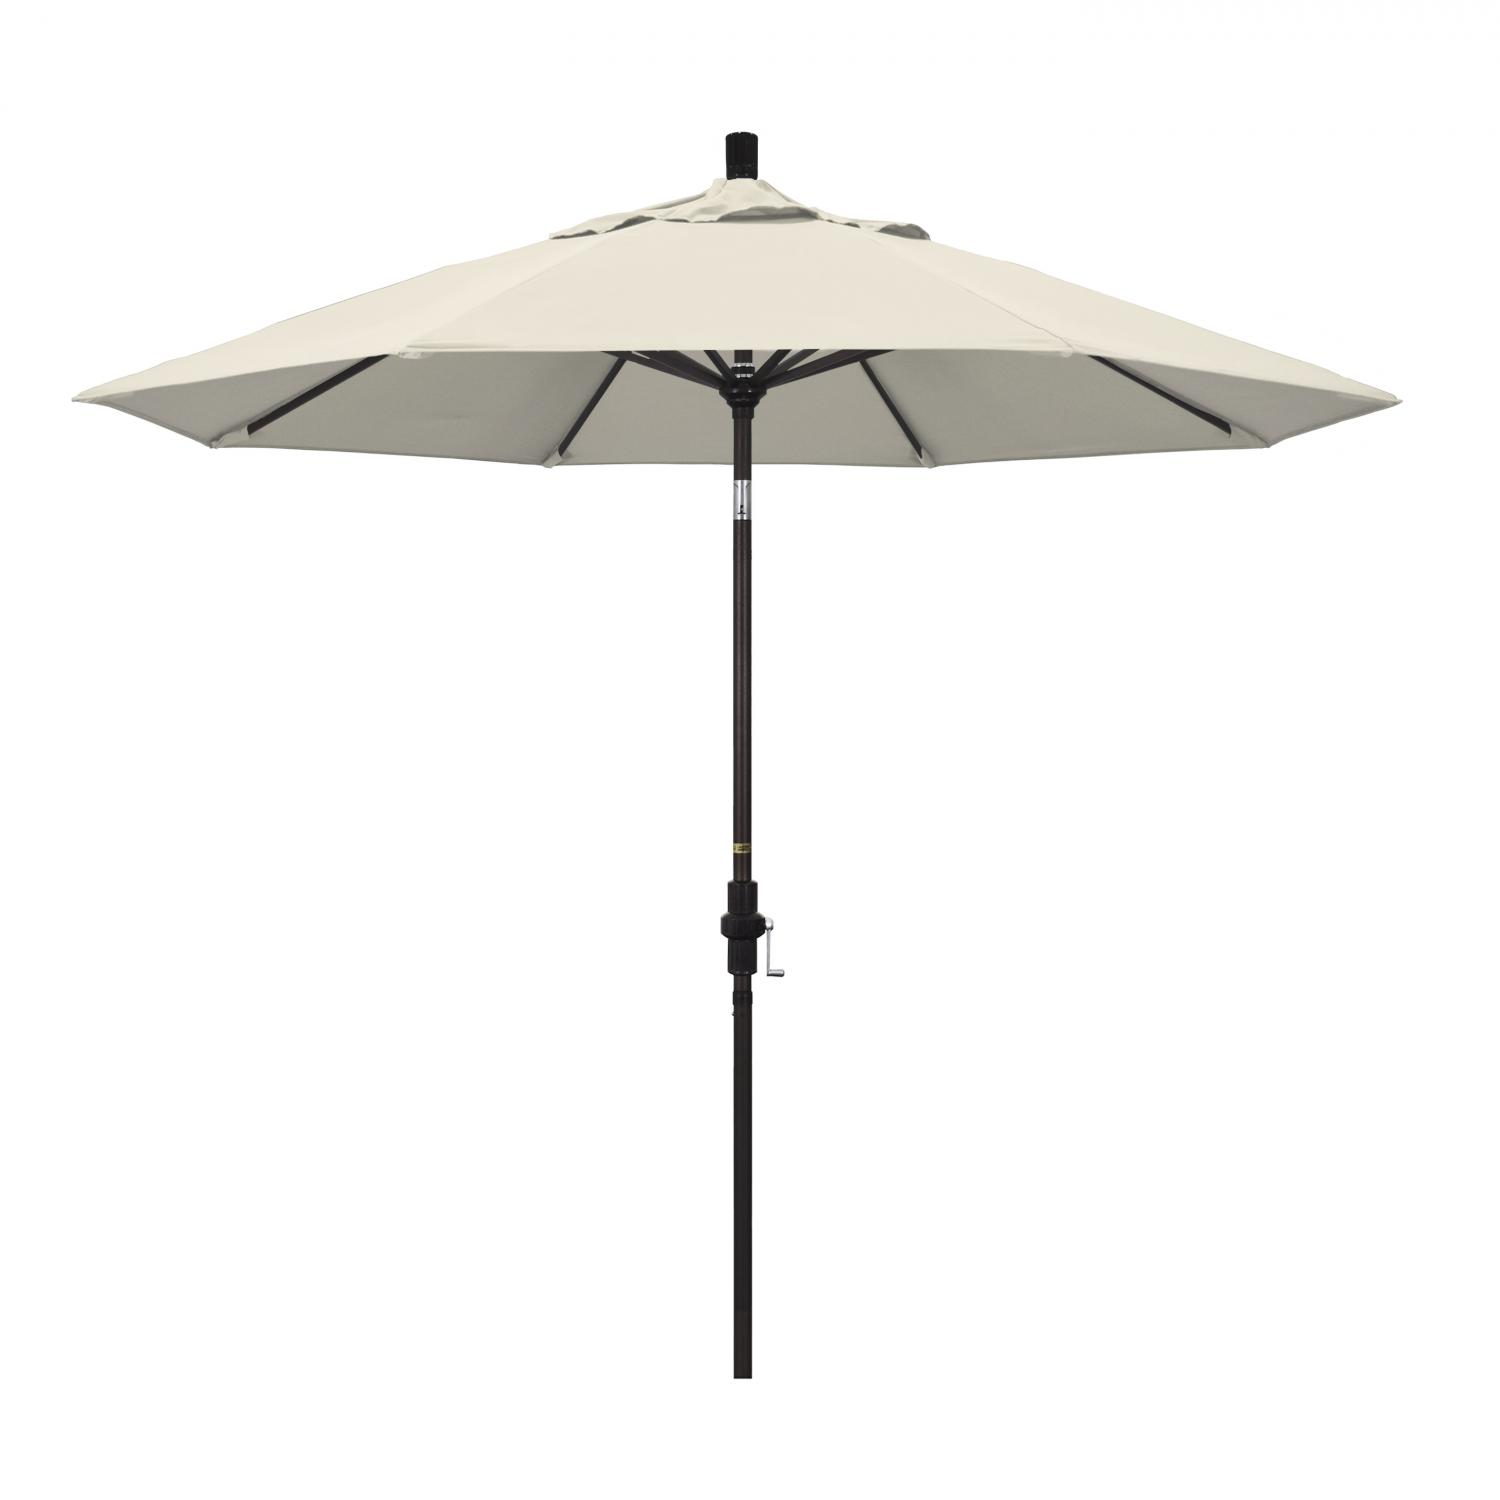 California Umbrella 9 Ft. Octagonal Aluminum Collar Tilt Patio Umbrella W/ Crank Lift & Aluminum Ribs - Bronze Frame / Olefin Antique Beige Canopy